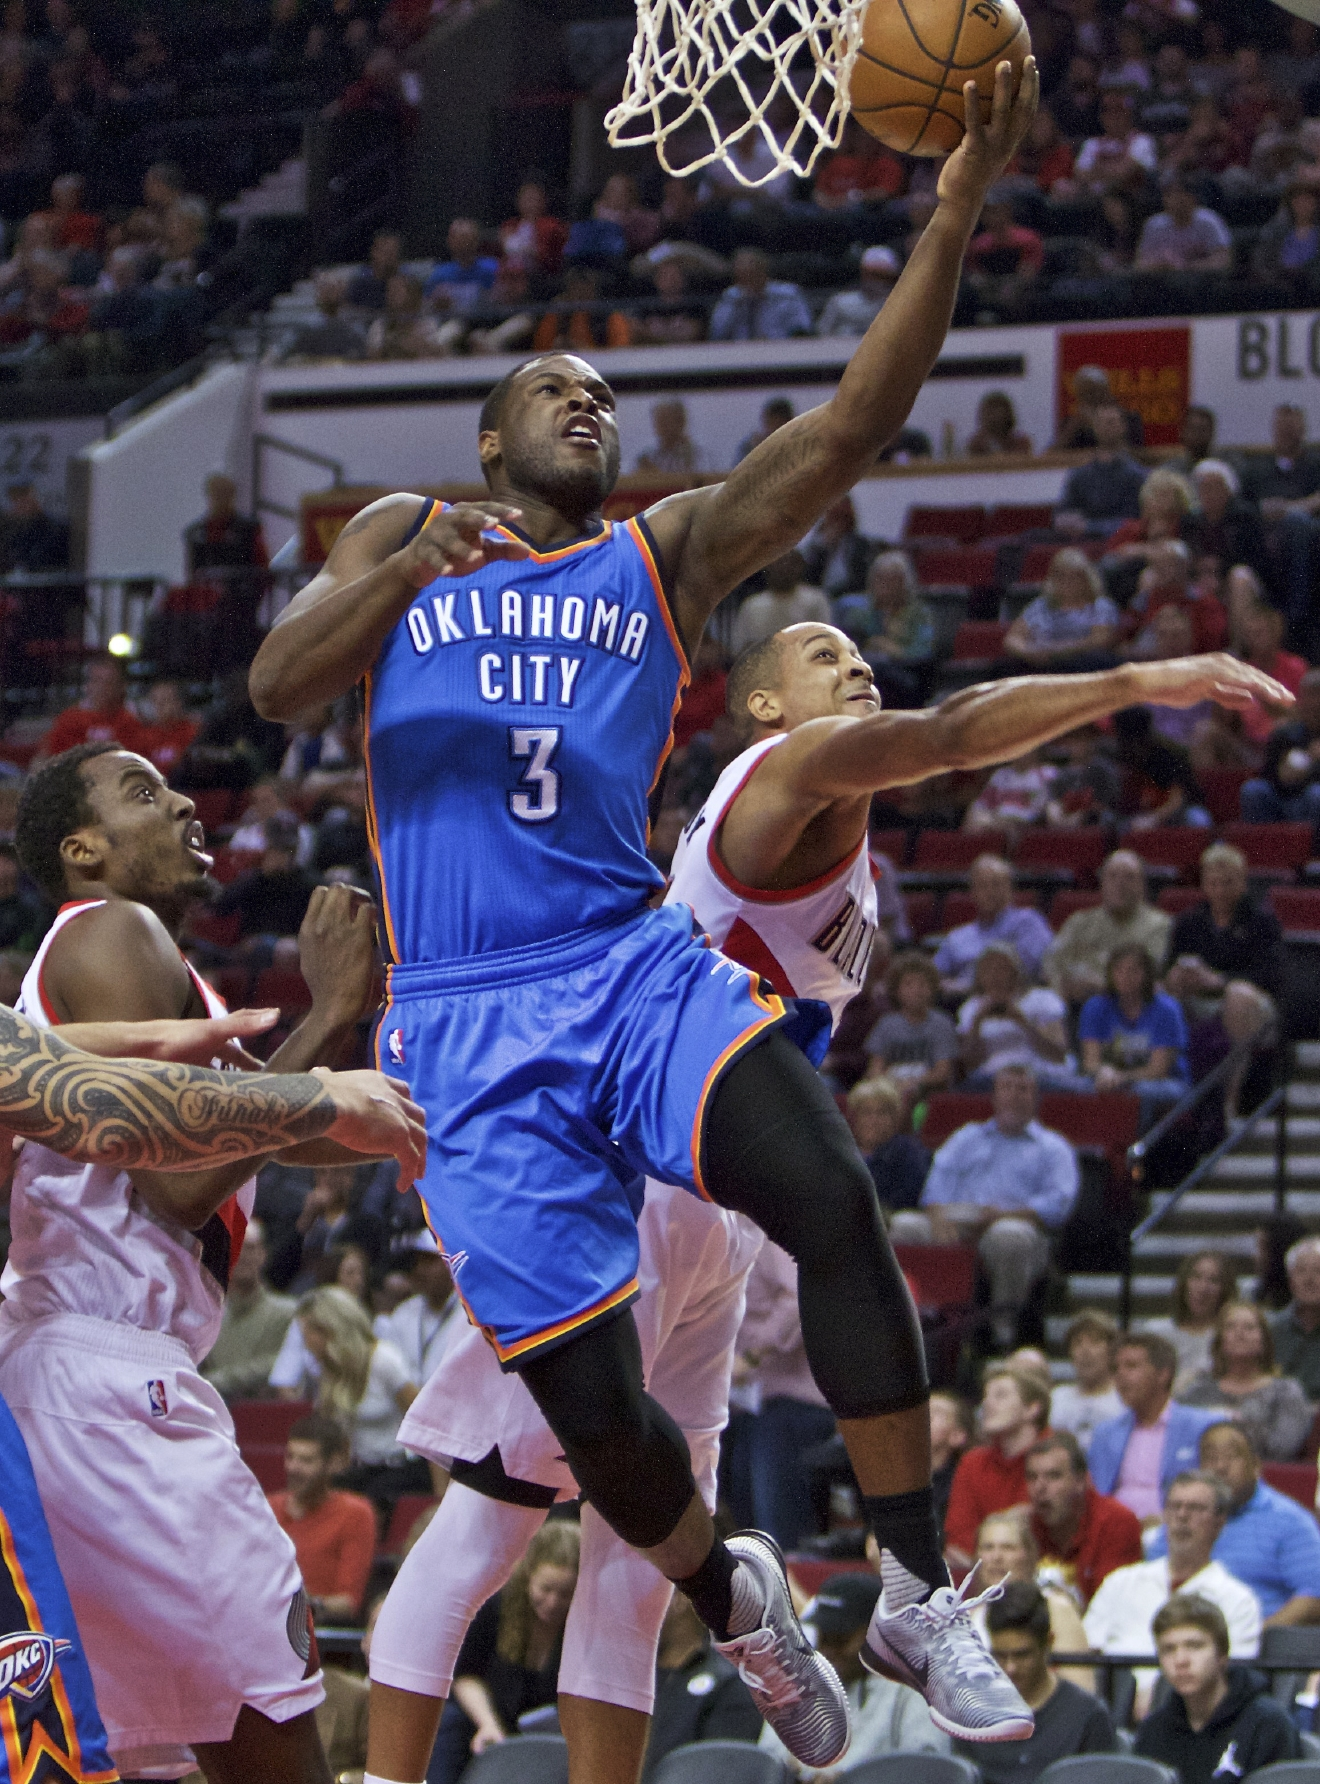 Oklahoma City Thunder guard Dion Waiters, center, shoots between Portland Trail Blazers guard C.J. McCollum, right, and forward Al-Farouq Aminu, left, during the first half of an NBA basketball game in Portland, Ore., Wednesday, April 6, 2016. (AP Photo/Craig Mitchelldyer)